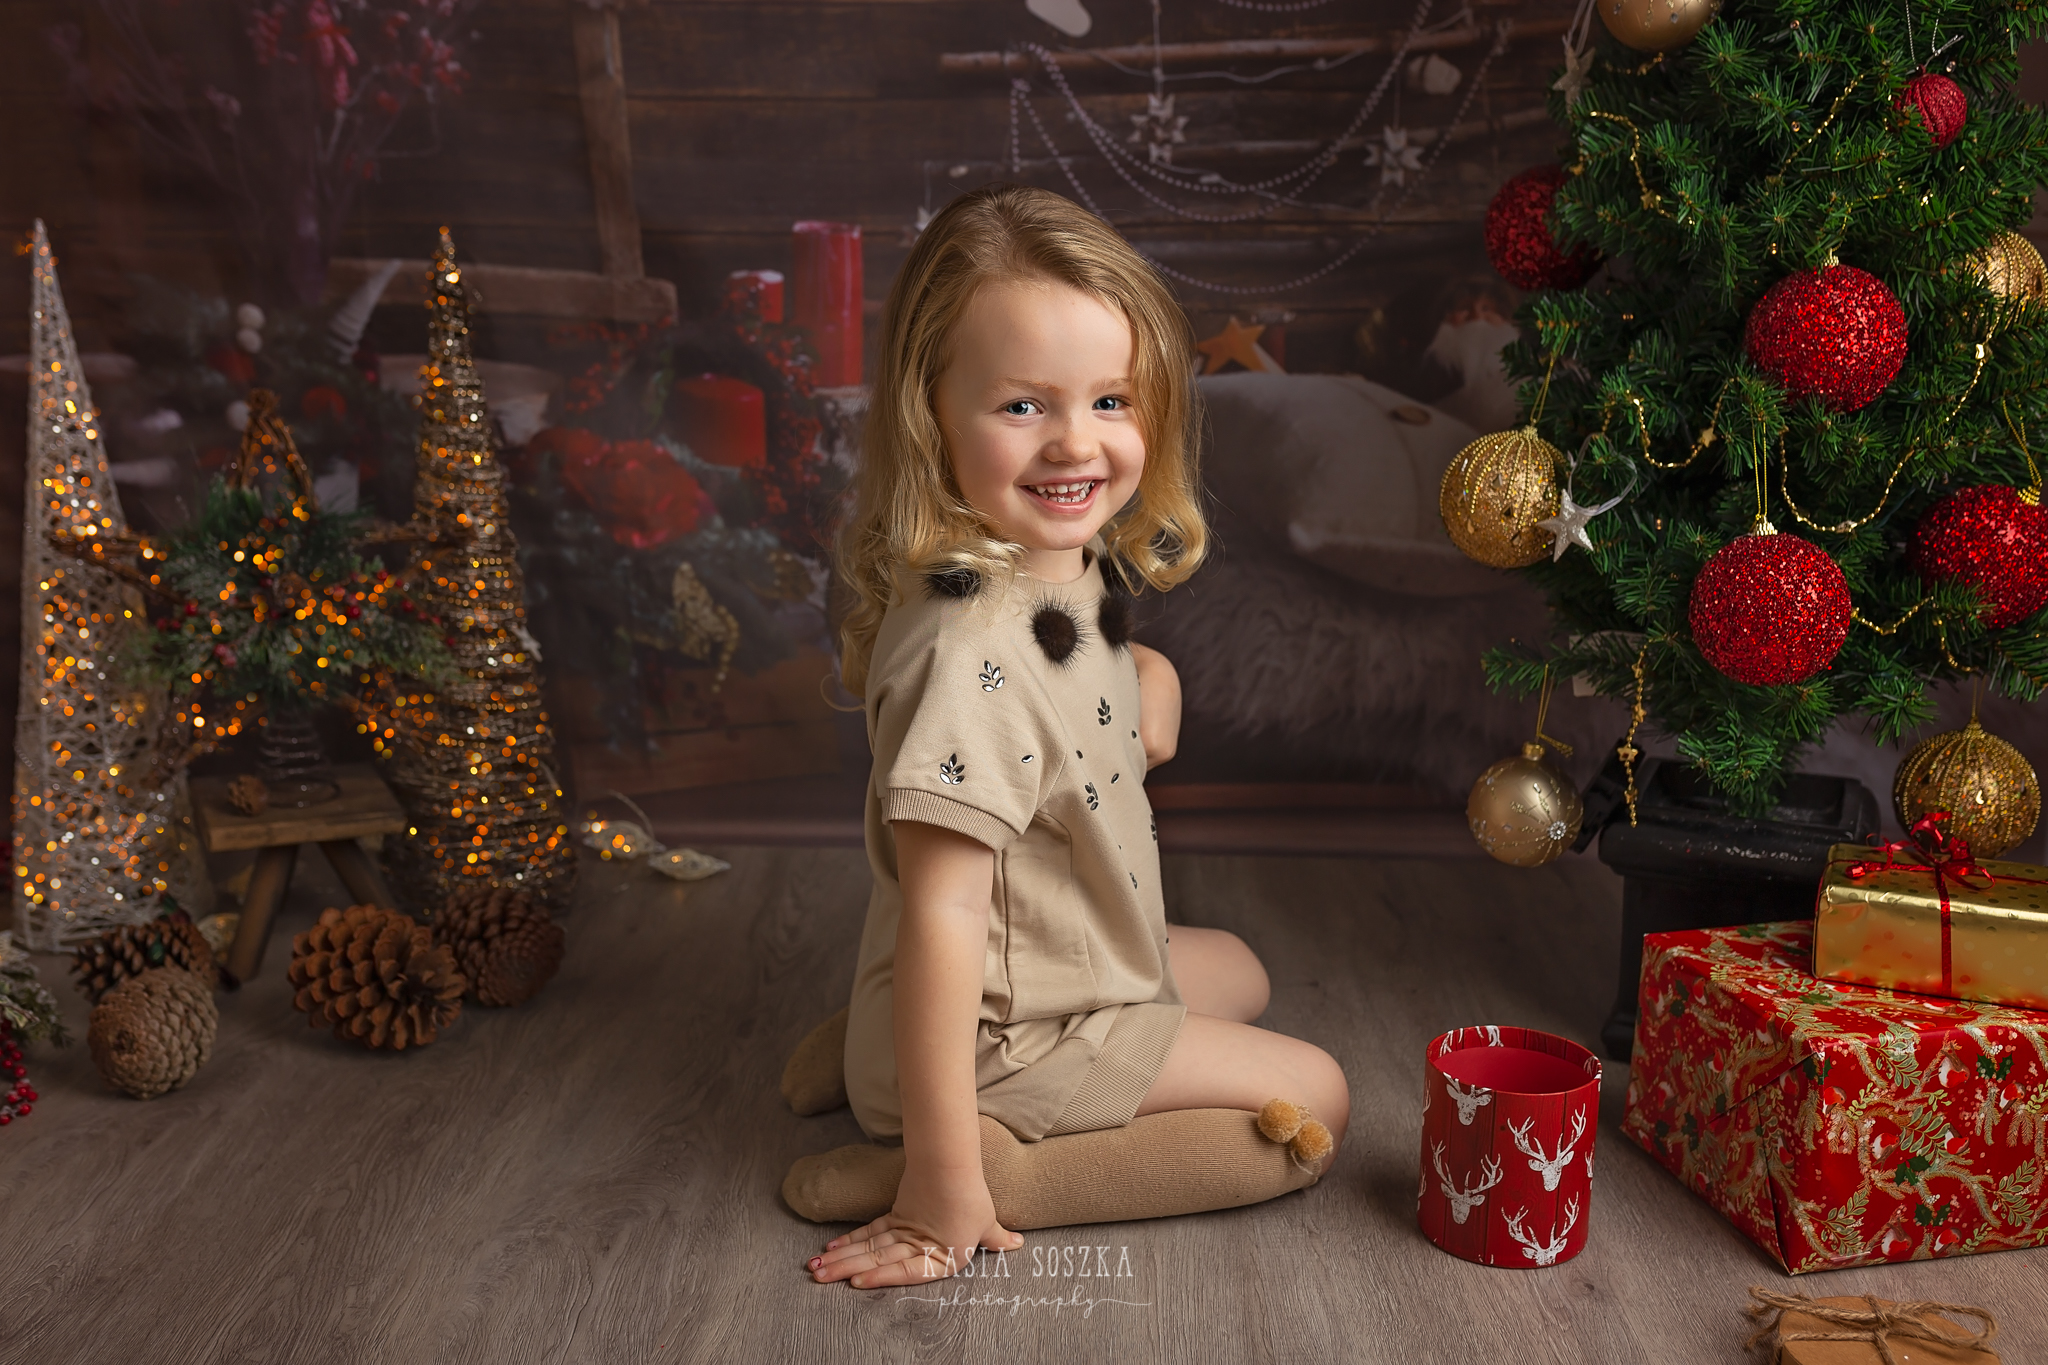 Child photographer Leeds, York, Bradford, Harrogate. Christmas Mini Sessions 2018 Leeds: beautiful little girl sitting by Christmas tree.